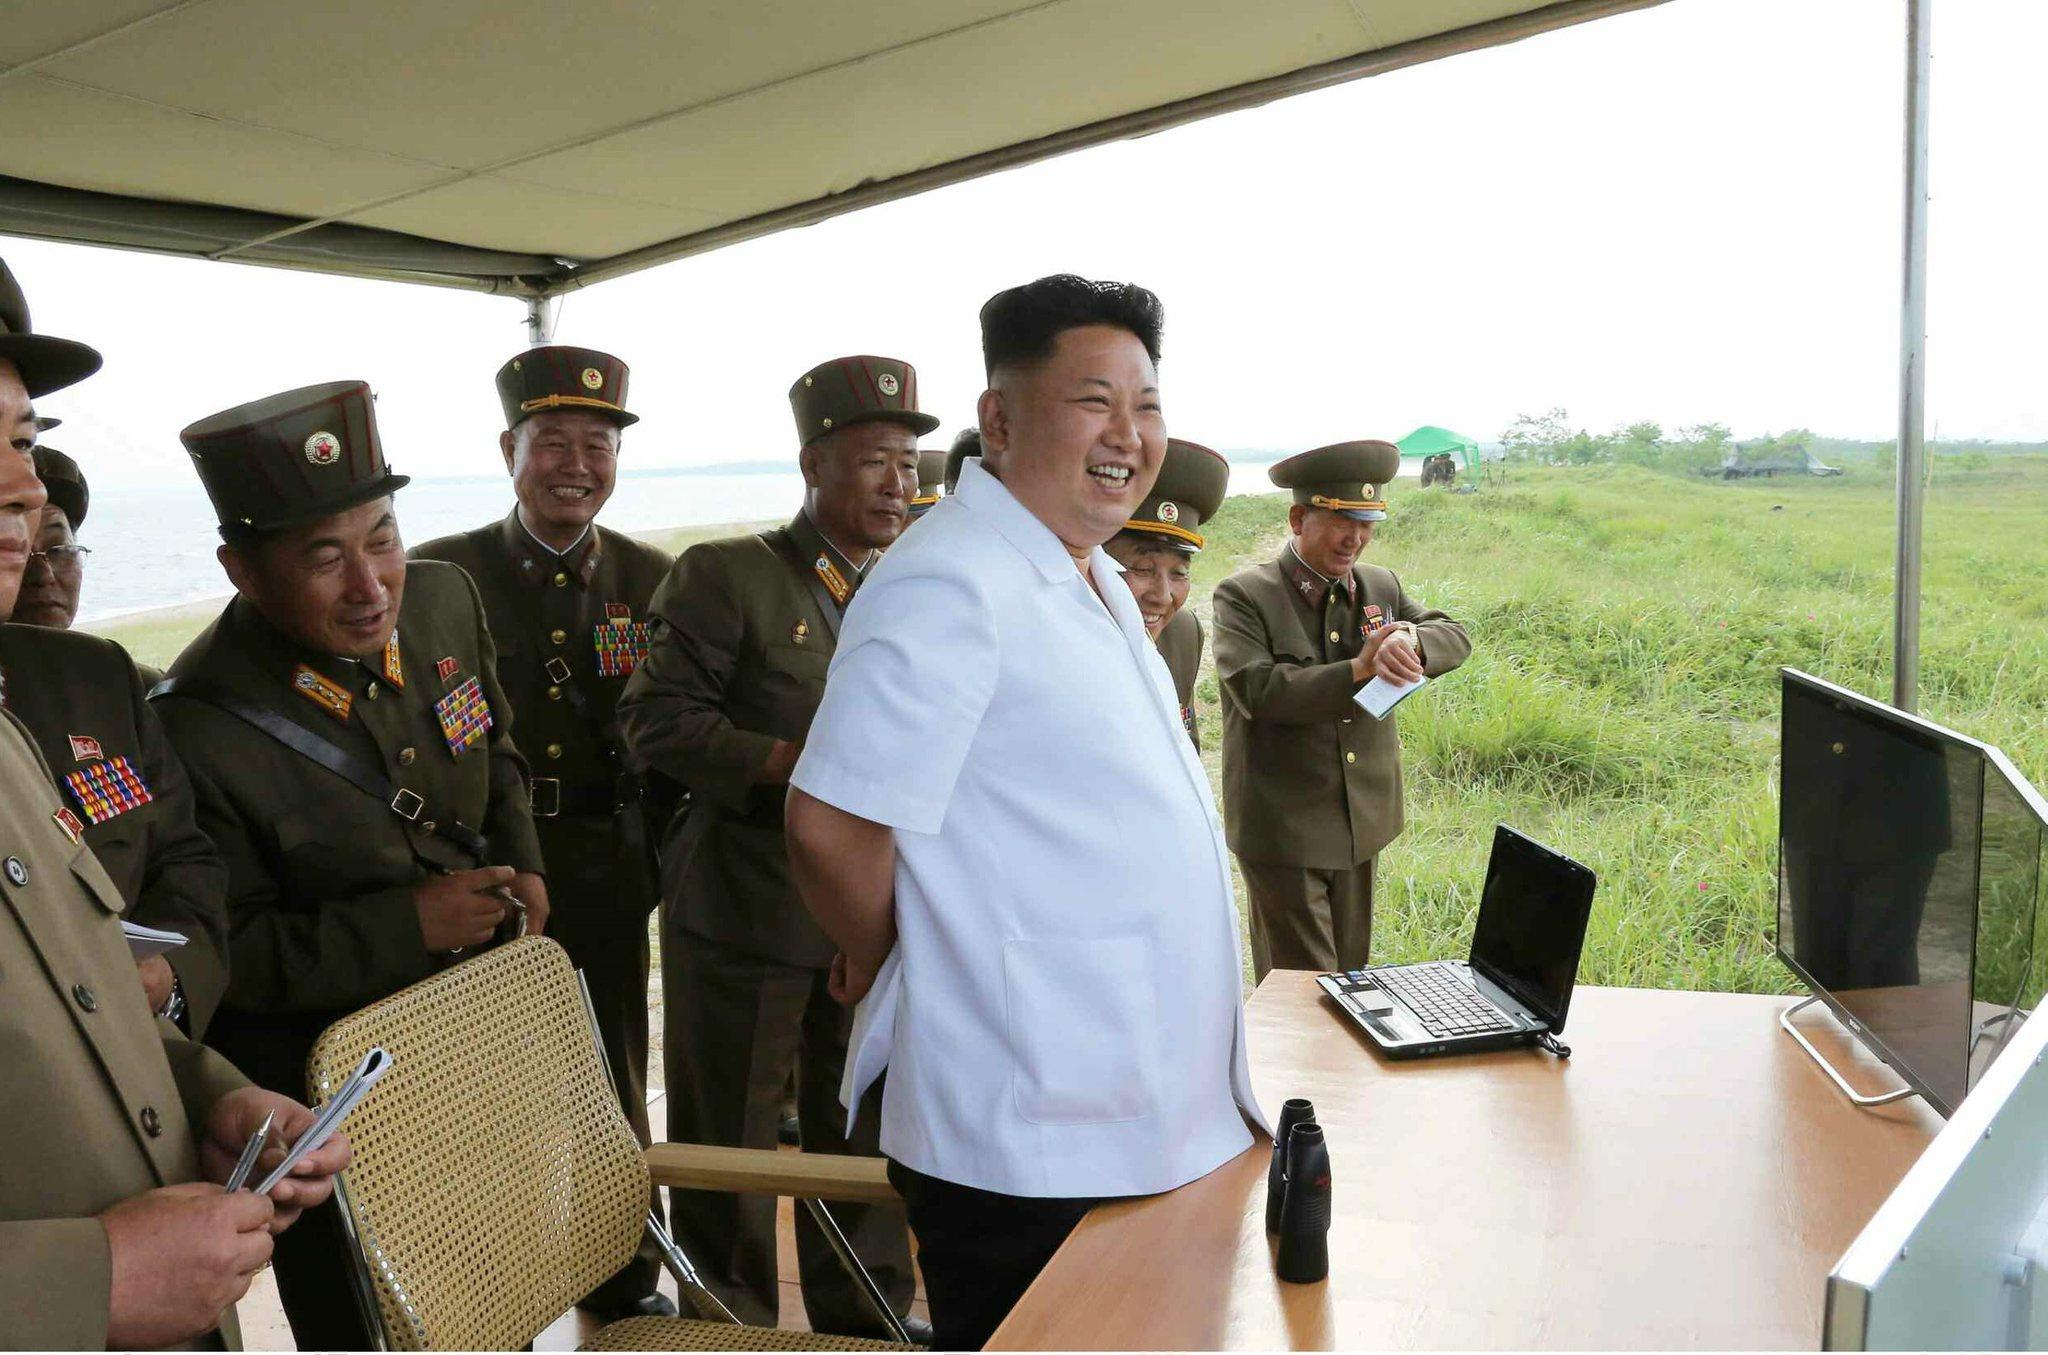 A picture released by the Rodong Sinmun, the newspaper of the ruling North Korean Workers Party, on 27 June 2014 shows North Korean leader Kim Jong-un observing the test-fire of a newly developed tactical guided missile at an undisclosed location in North Korea.